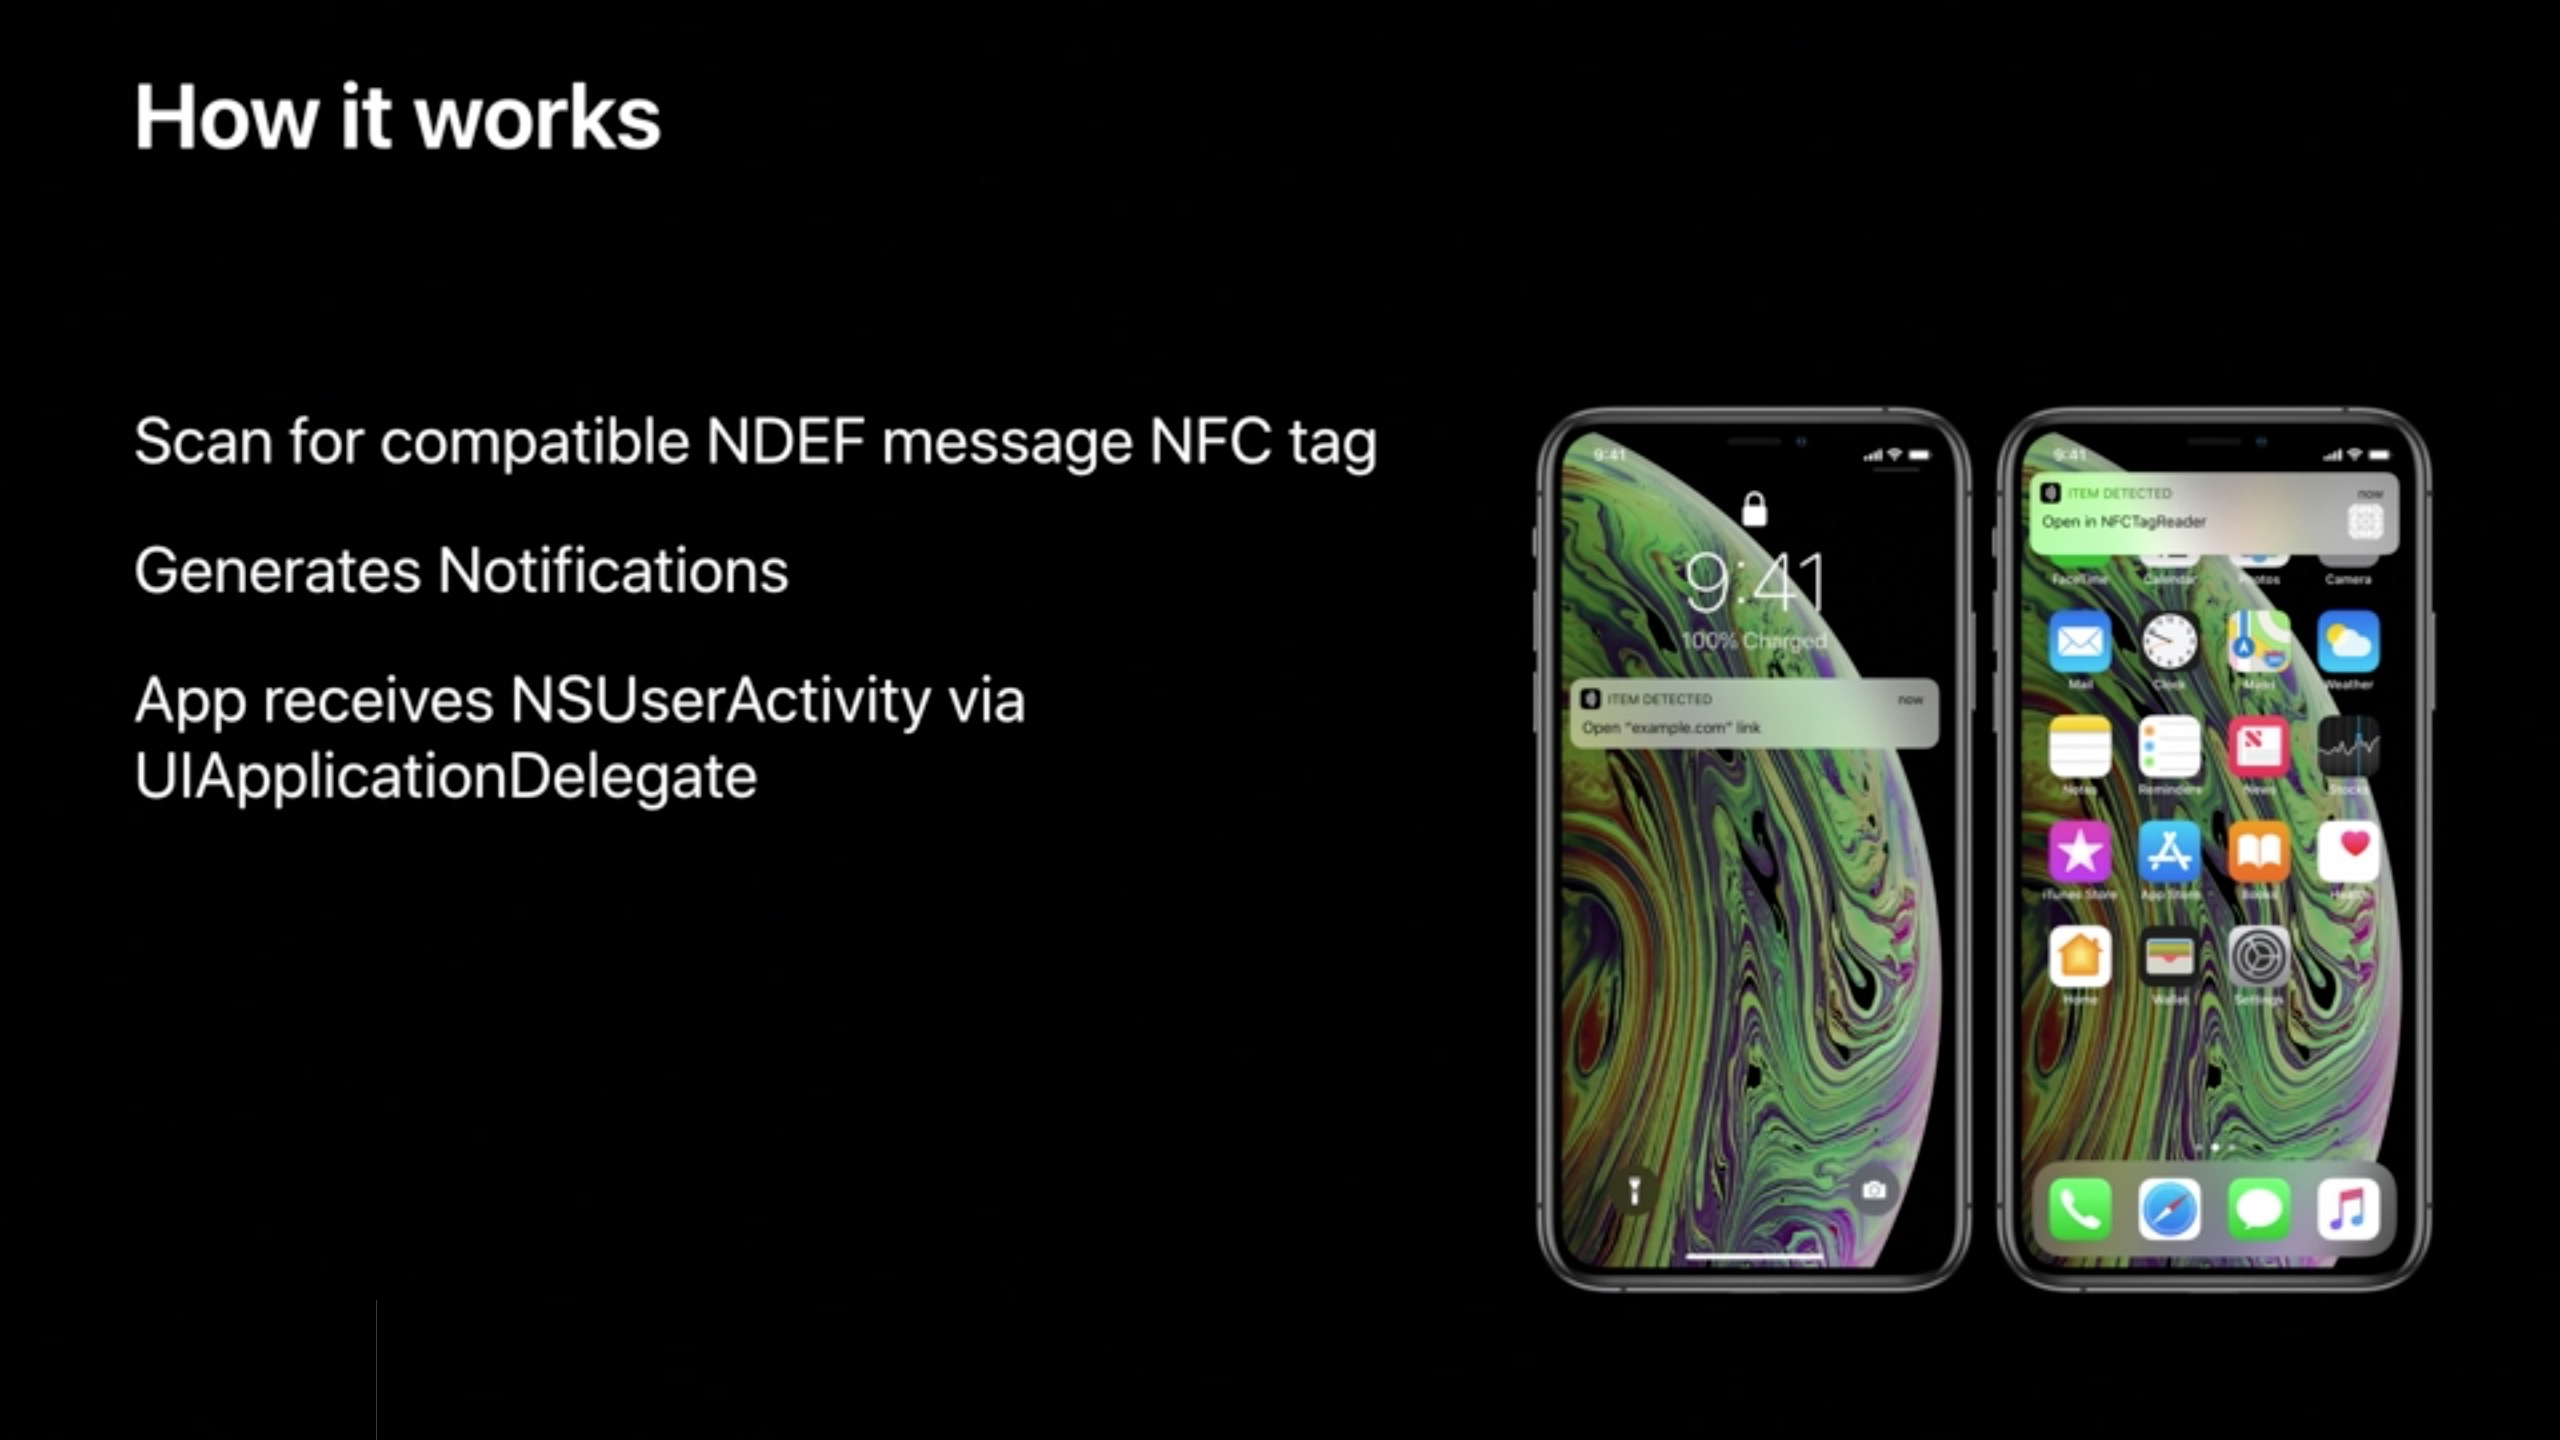 iPhone Xs and iPhone XR can read NFC tags without having to launch